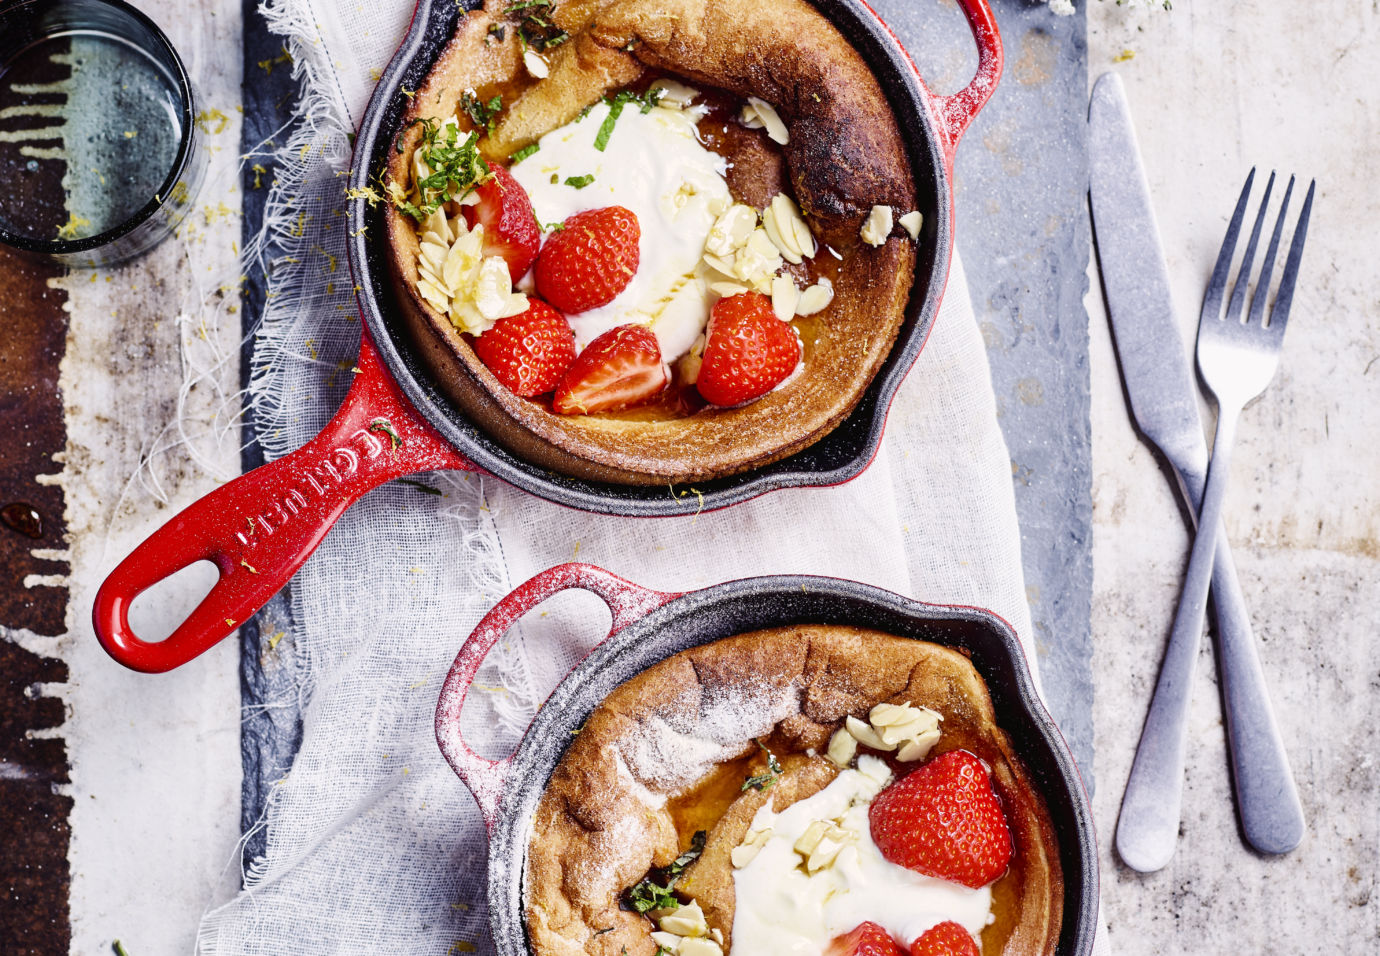 Sofie Dumont - Dutch Baby